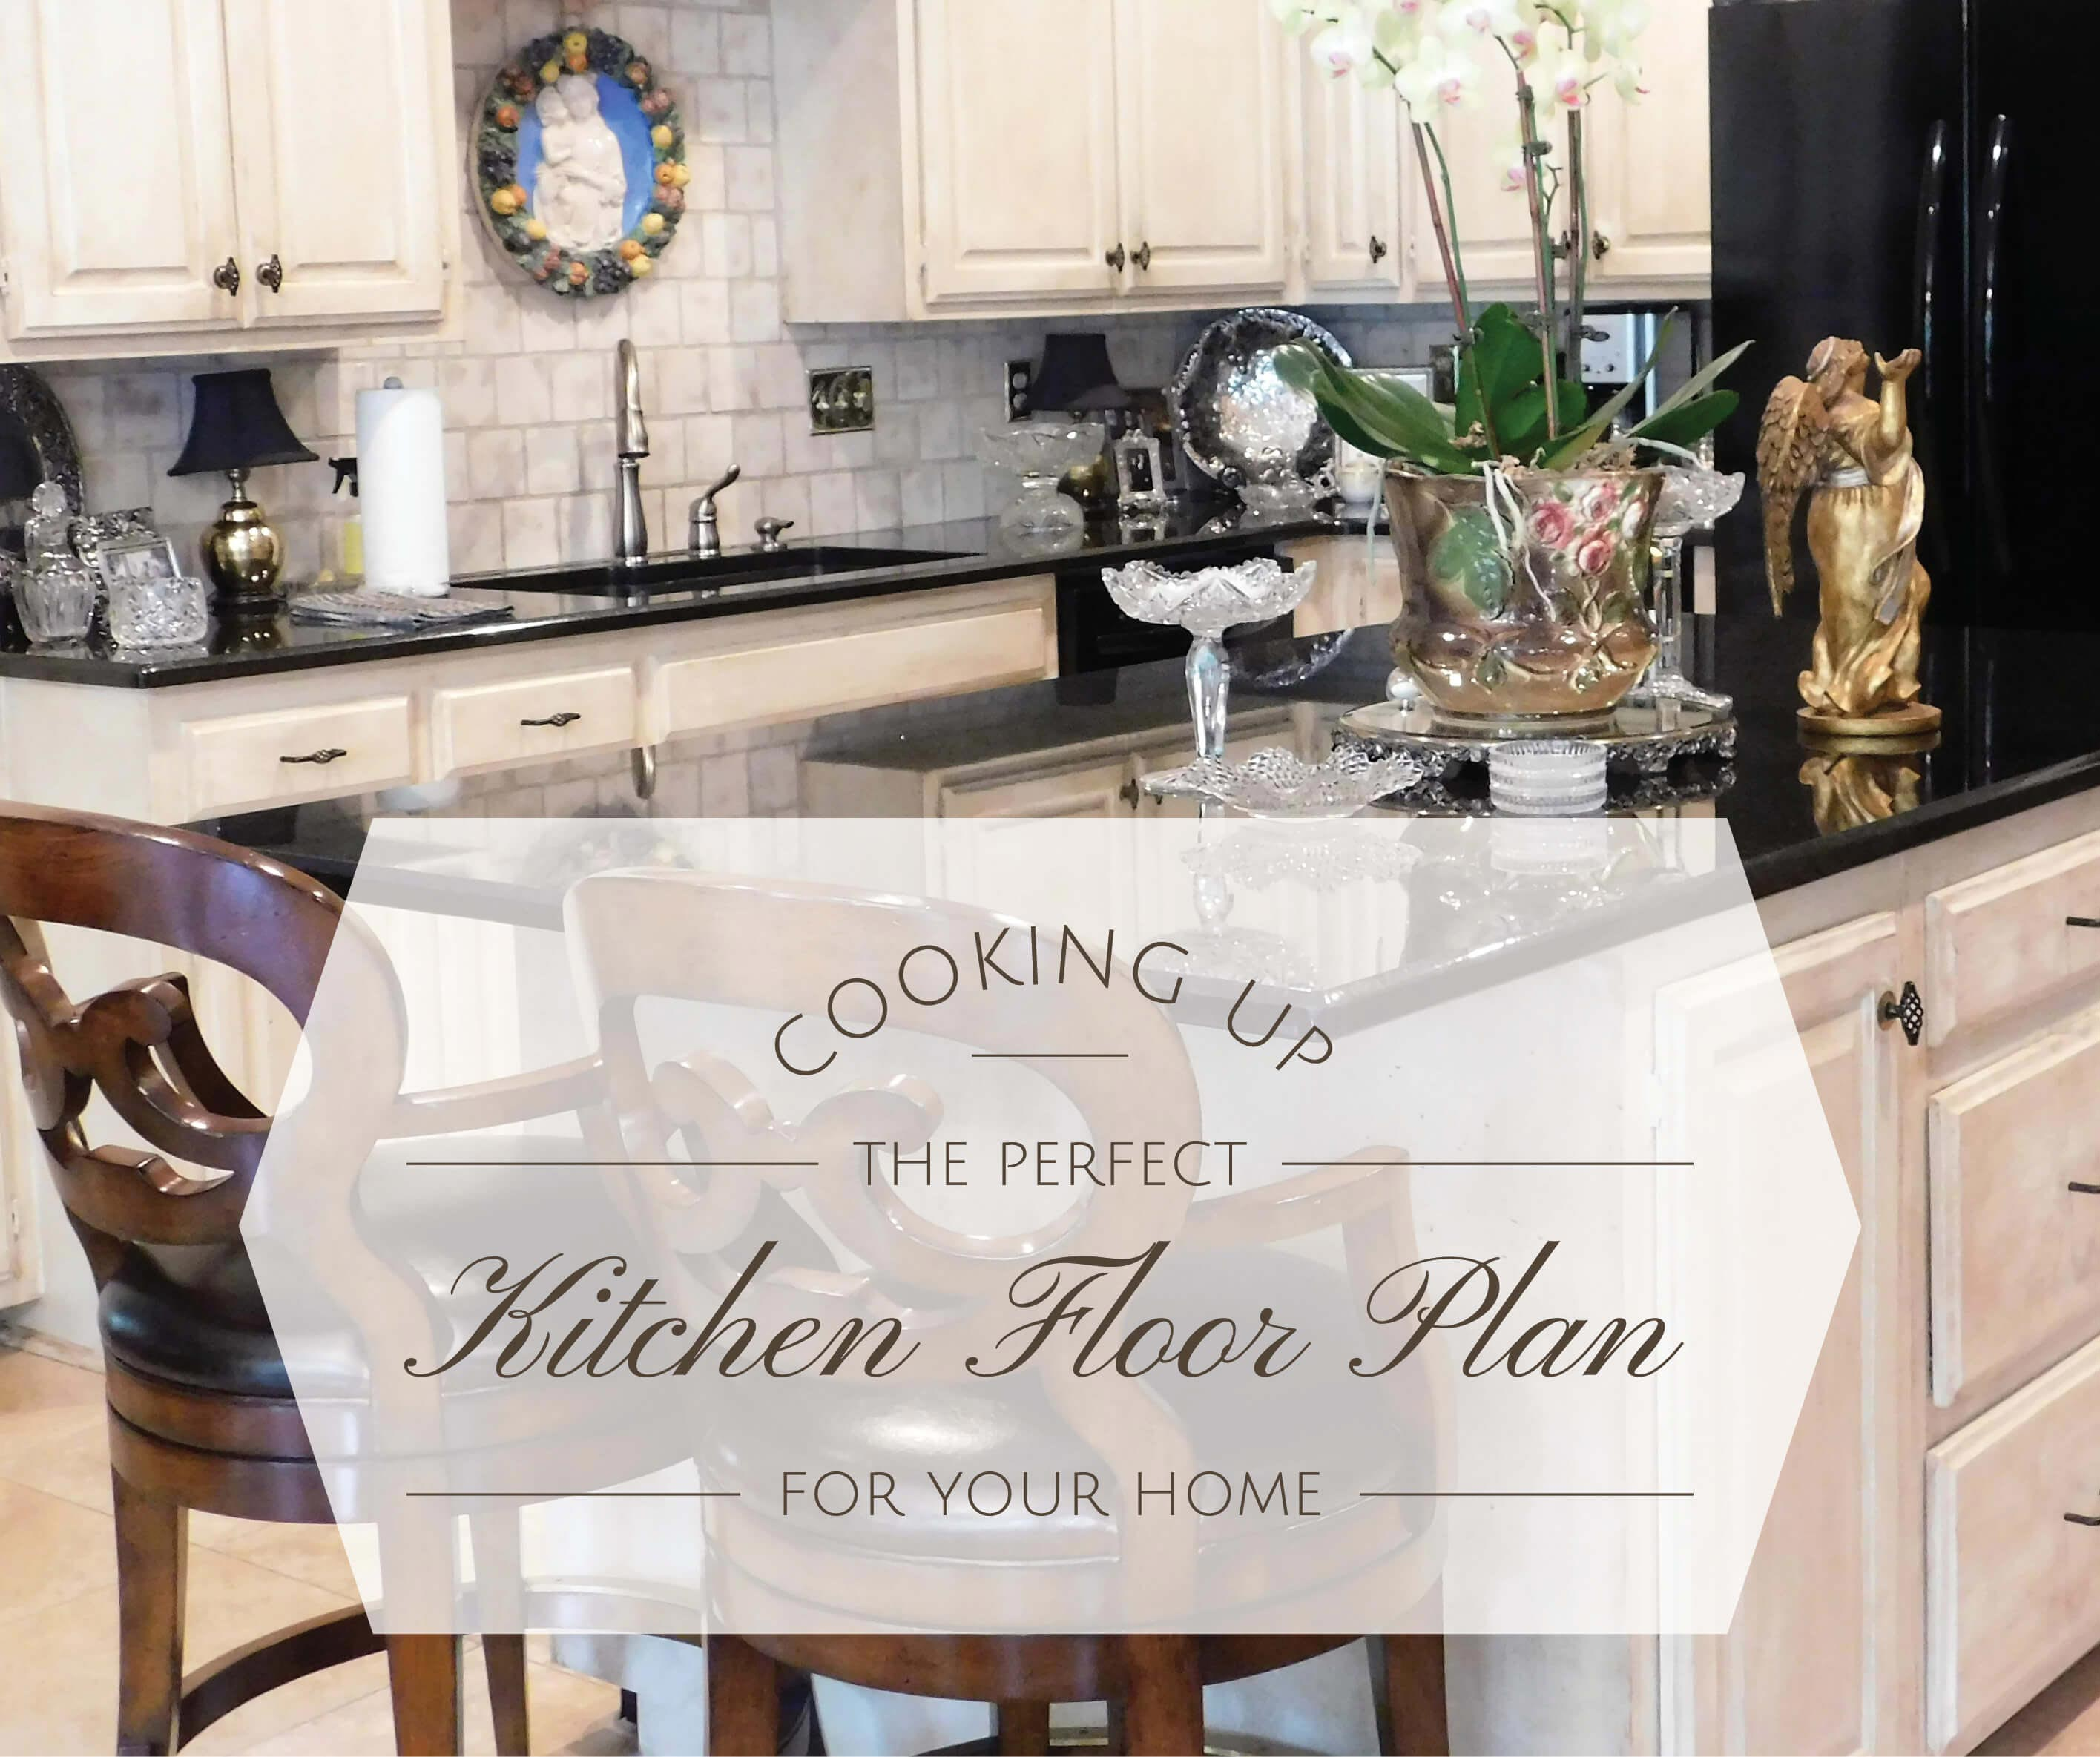 "Title image for blog on kitchen floor plans, text reads ""cooking up the perfect kitchen floorplan for your home"""